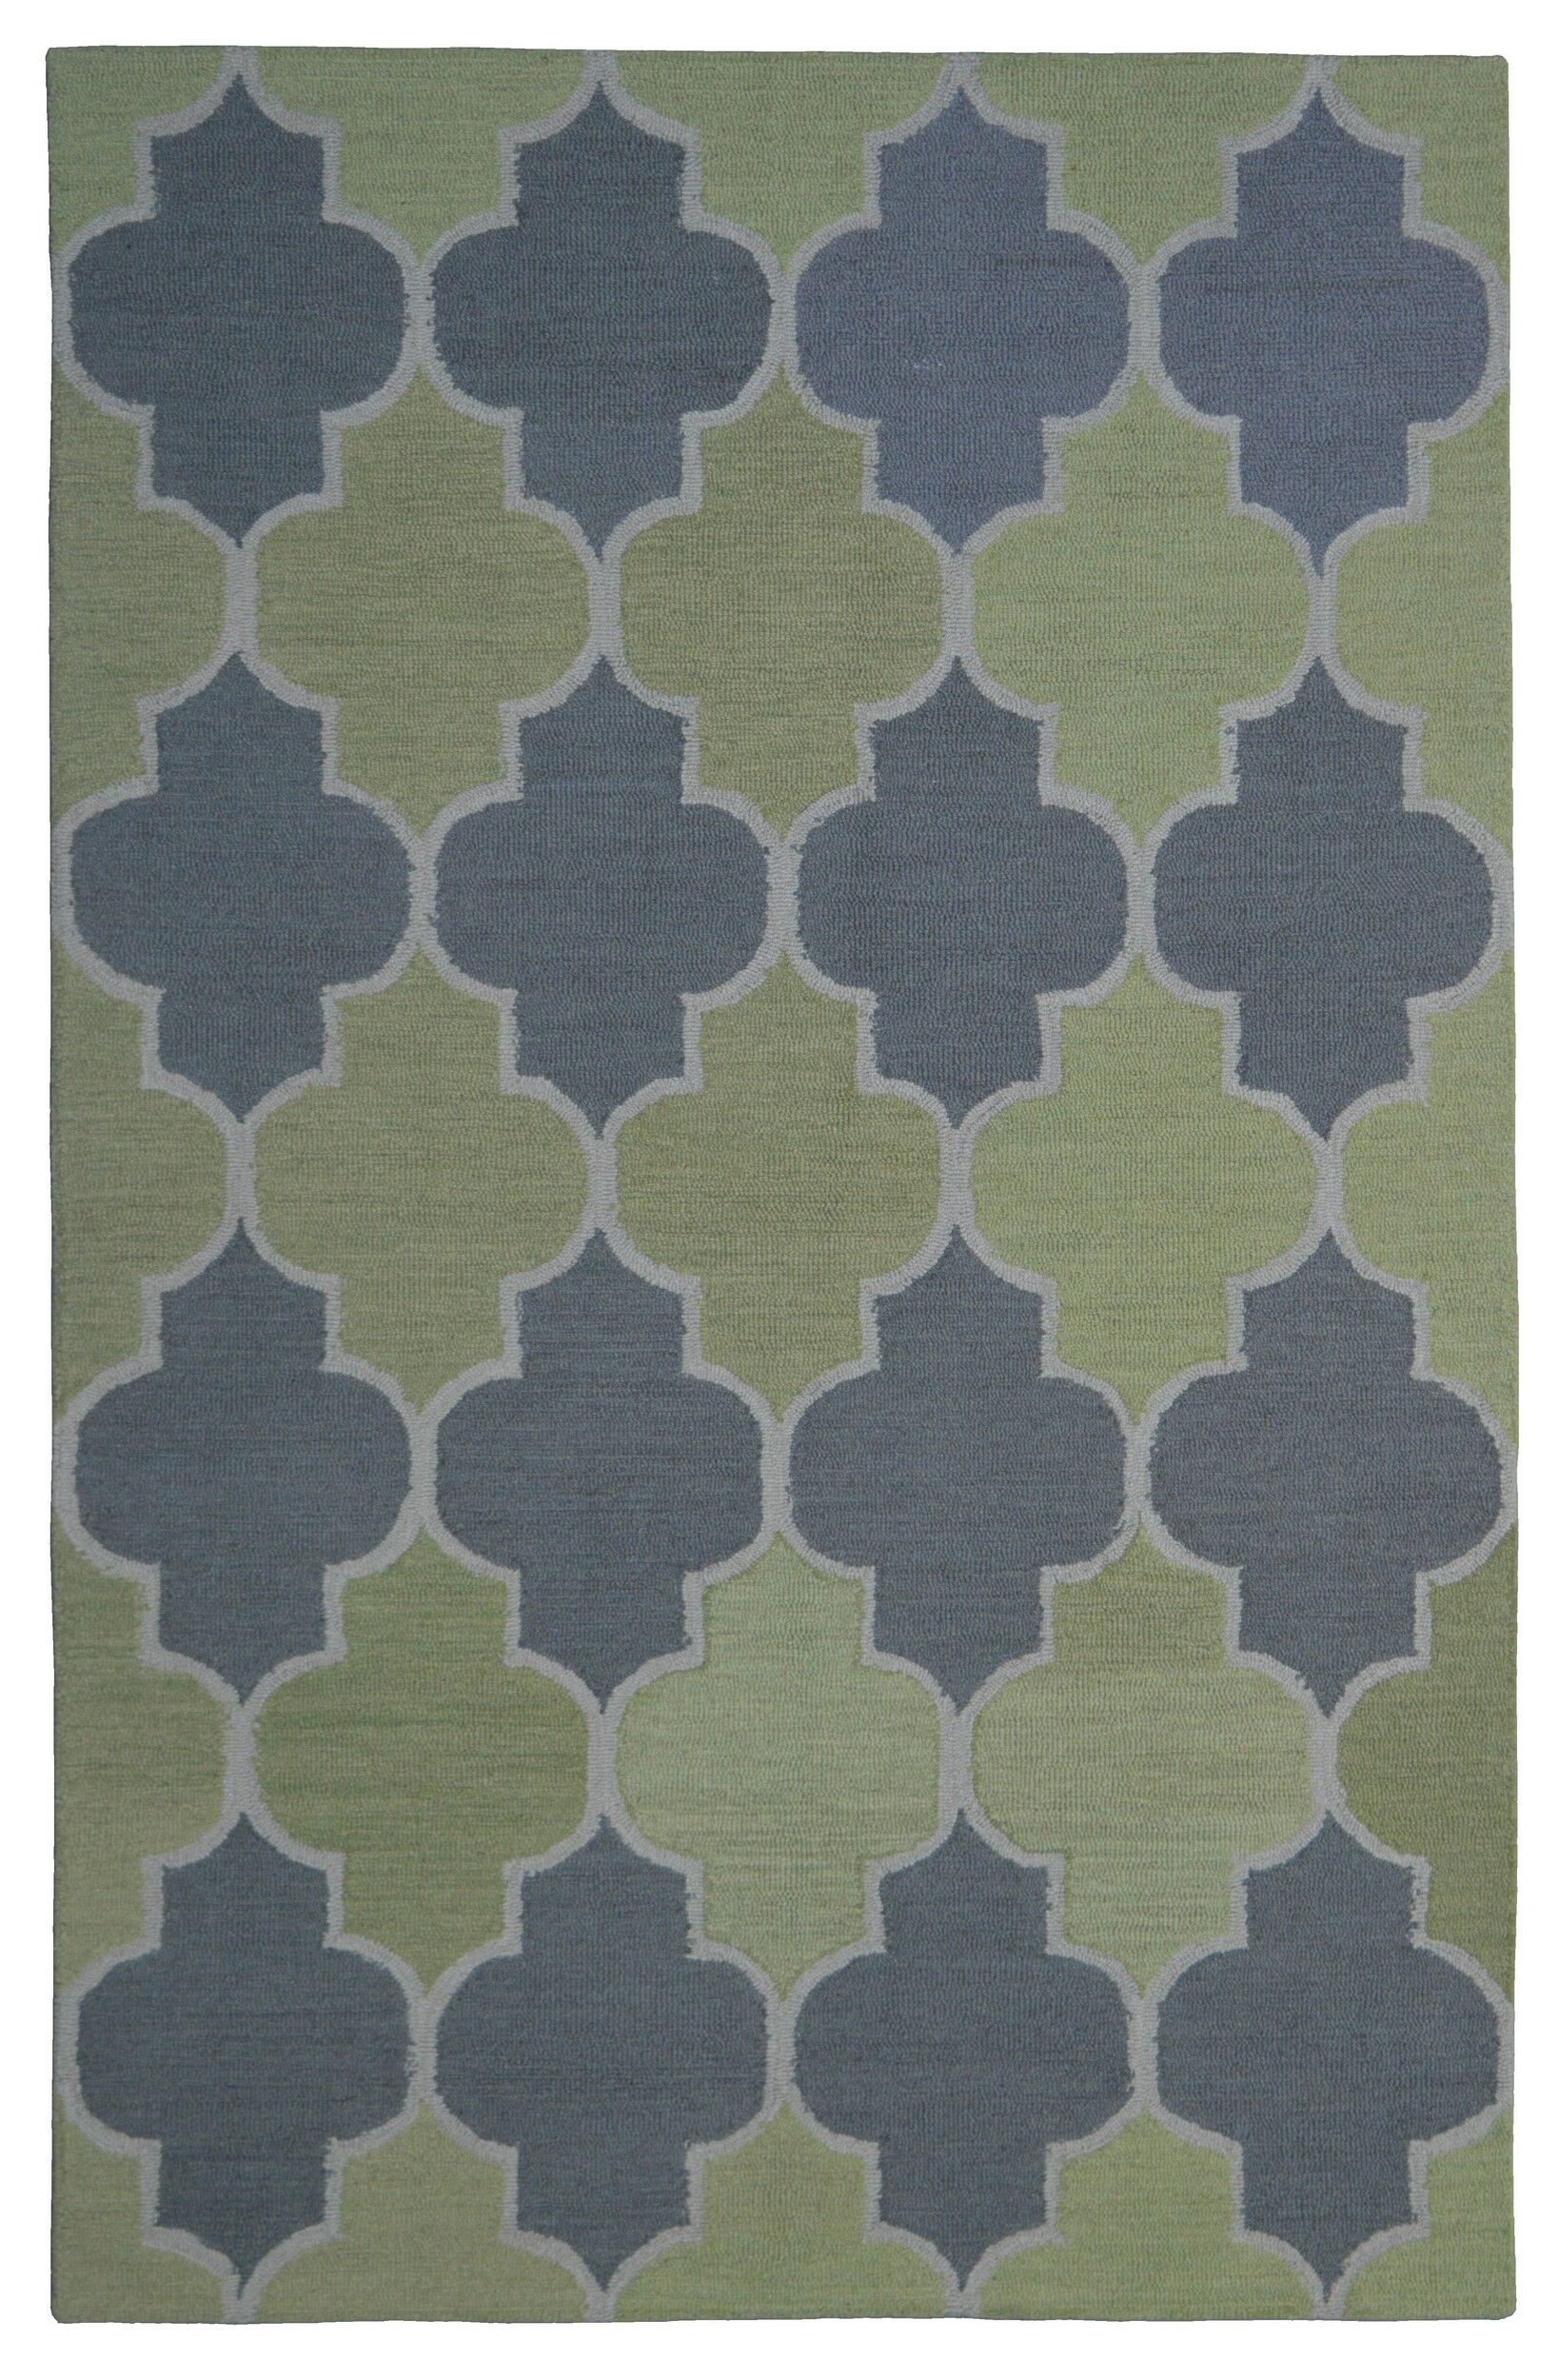 Wool Hand-Tufted Green/Silver Area Rug Rug Size: 5' x 8'